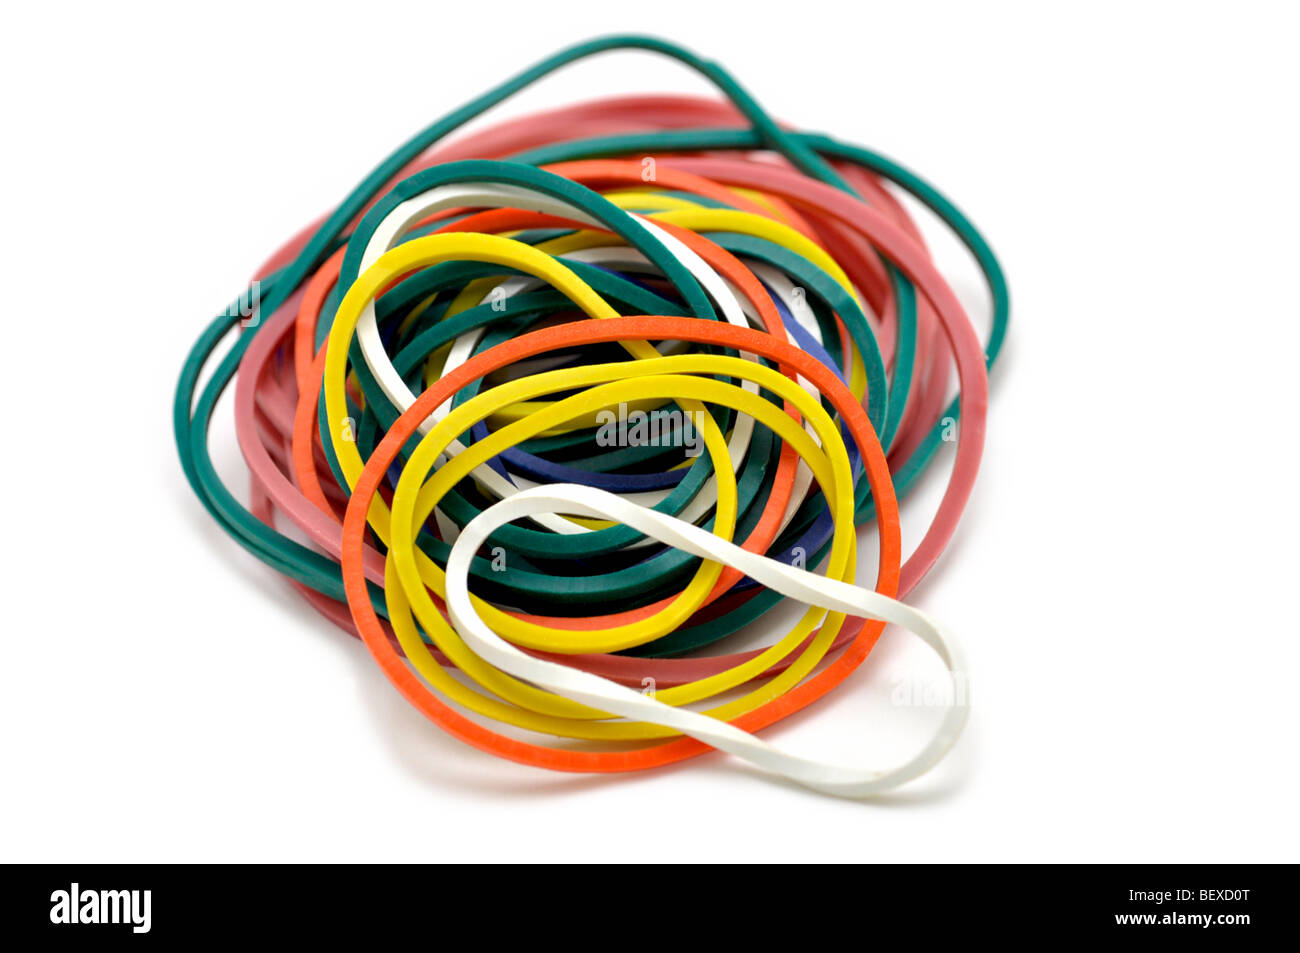 Rubber Bands - Stock Image